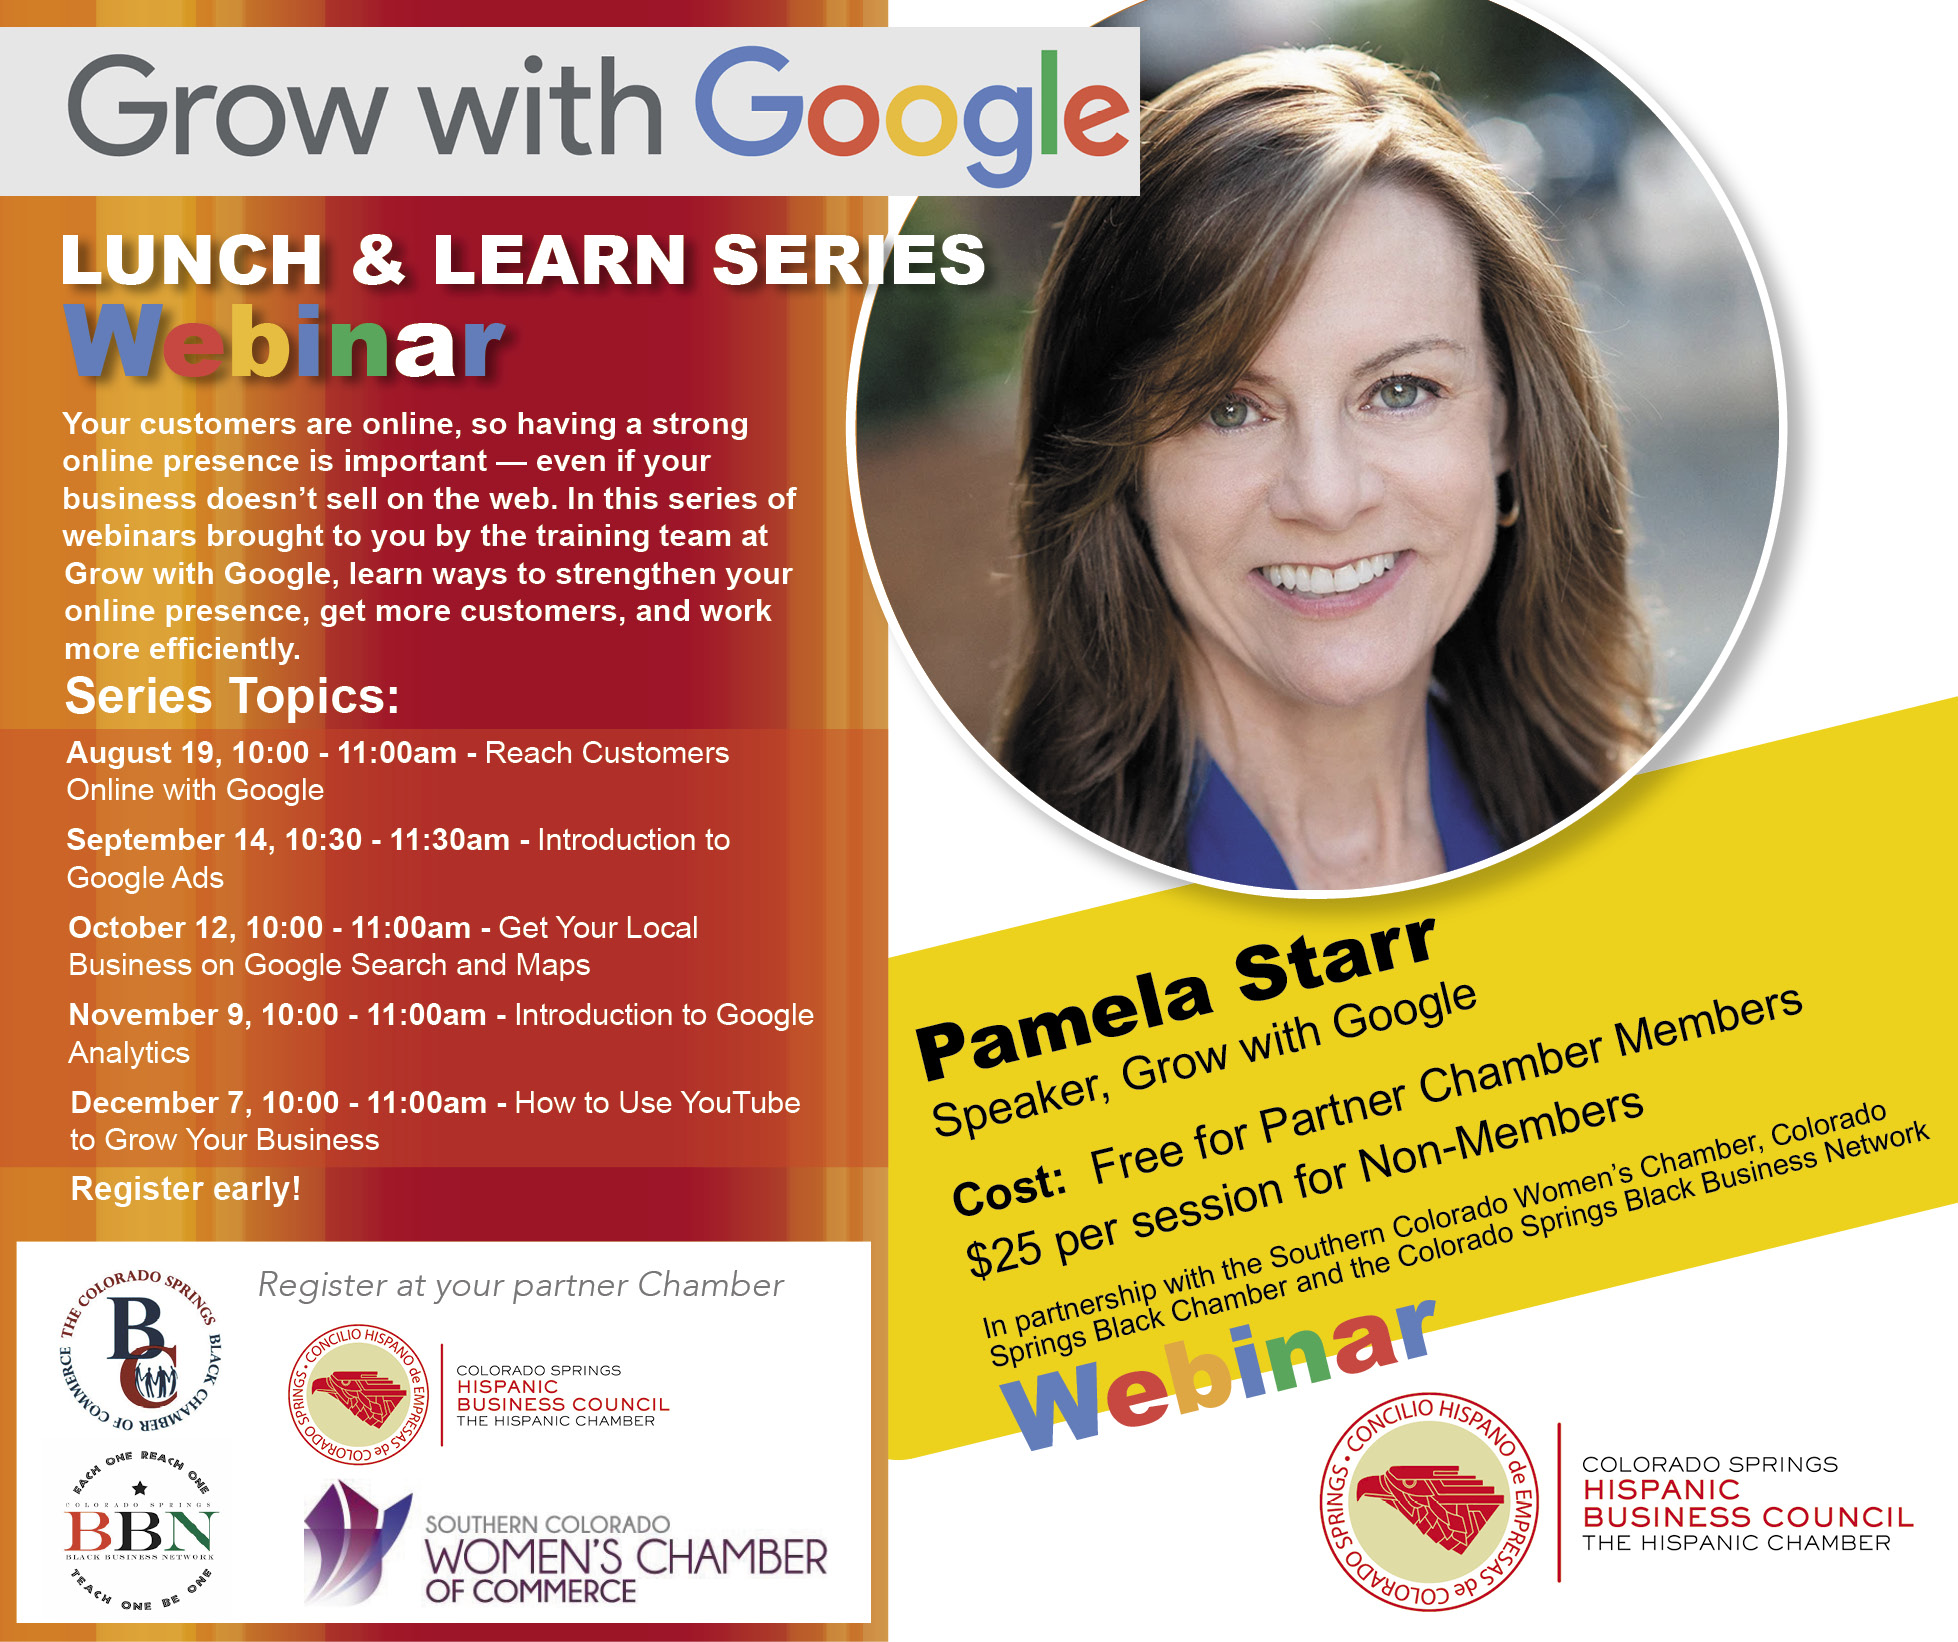 GROW-WITH-GOOGLE-LUNCH-and-LEARN-SERIES-UPDATE.jpg